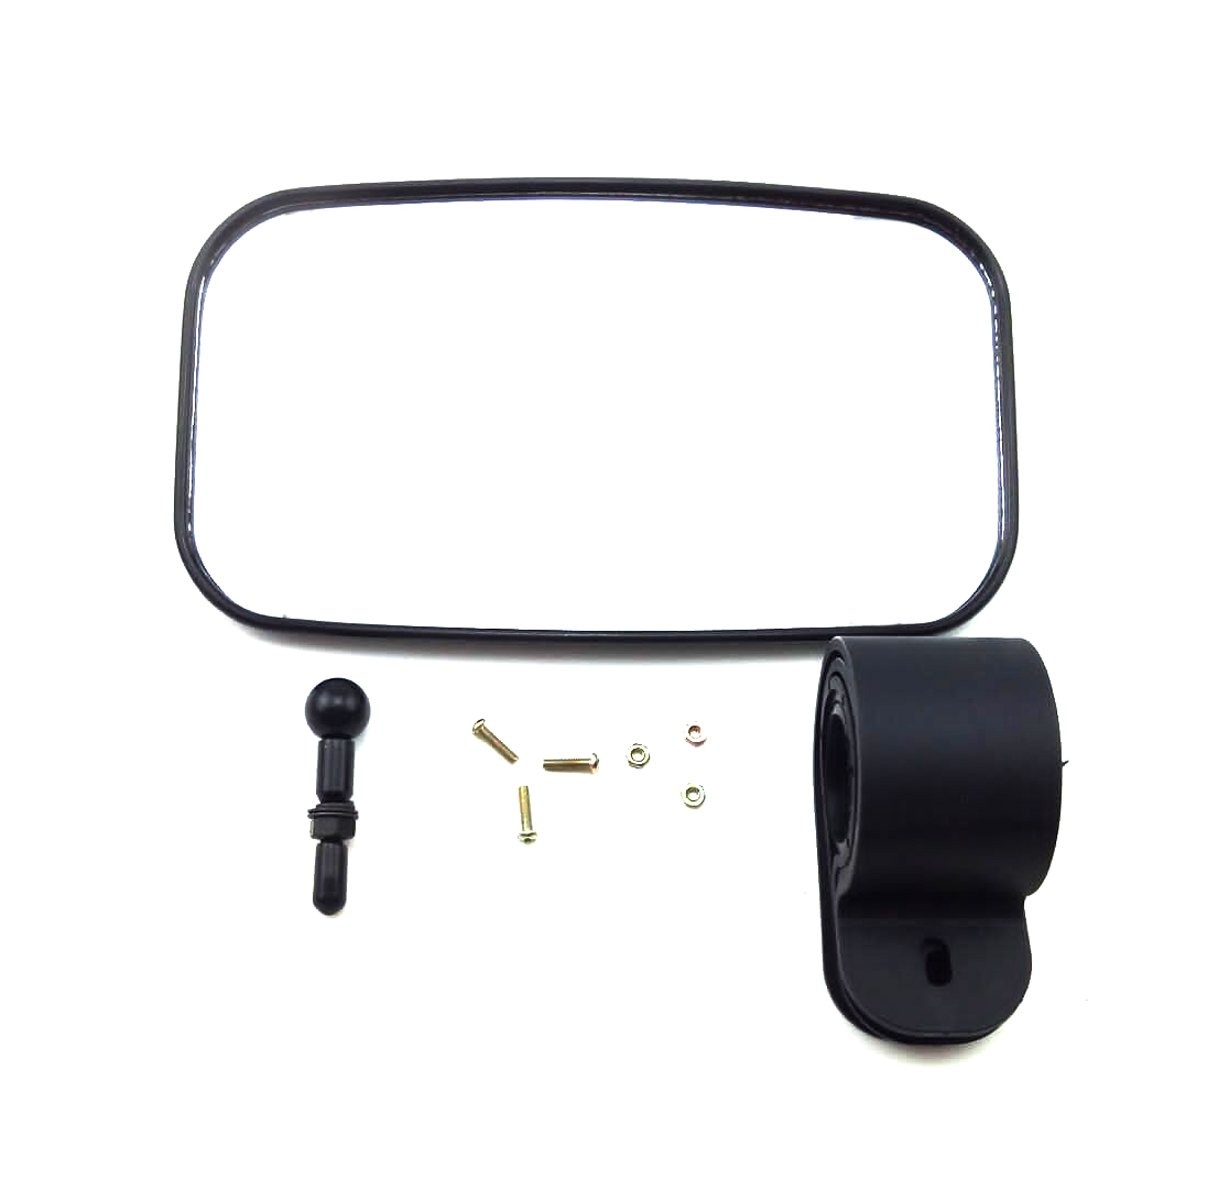 OKSTNO UTV Rear View Mirror for 1.5'' - 2'' Roll Cage with Shatter-Proof Tempered Glass Fits to Polaris Ranger,RZR Can Am Commander,Maverick Yamaha Viking,Rhino,Honda,Gator,Mirrors by OKSTNO (Image #5)